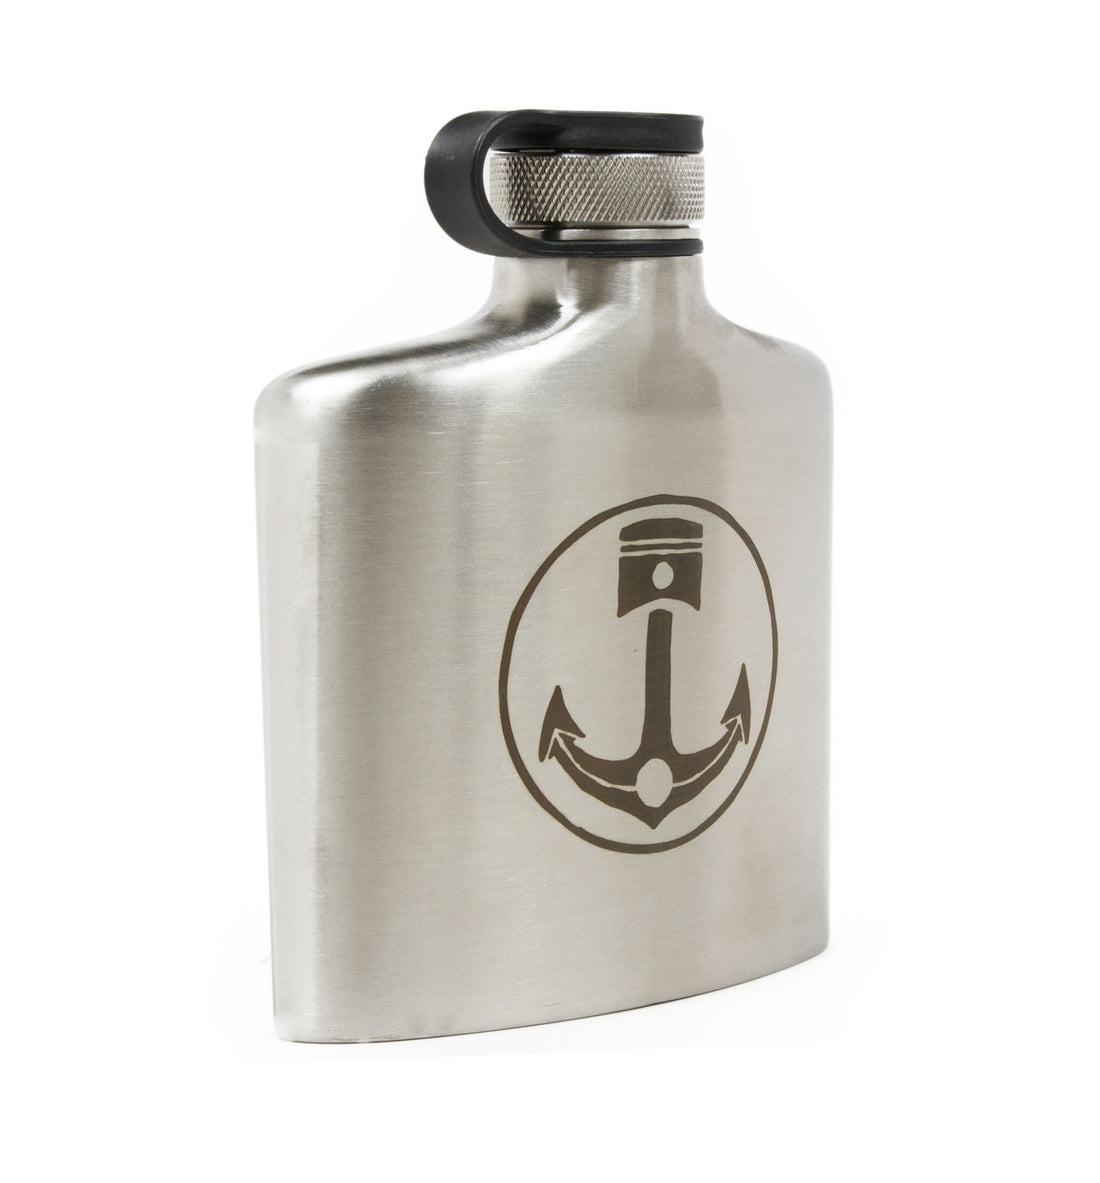 INR 6oz Flask - Kitchen/Bar - Iron and Resin